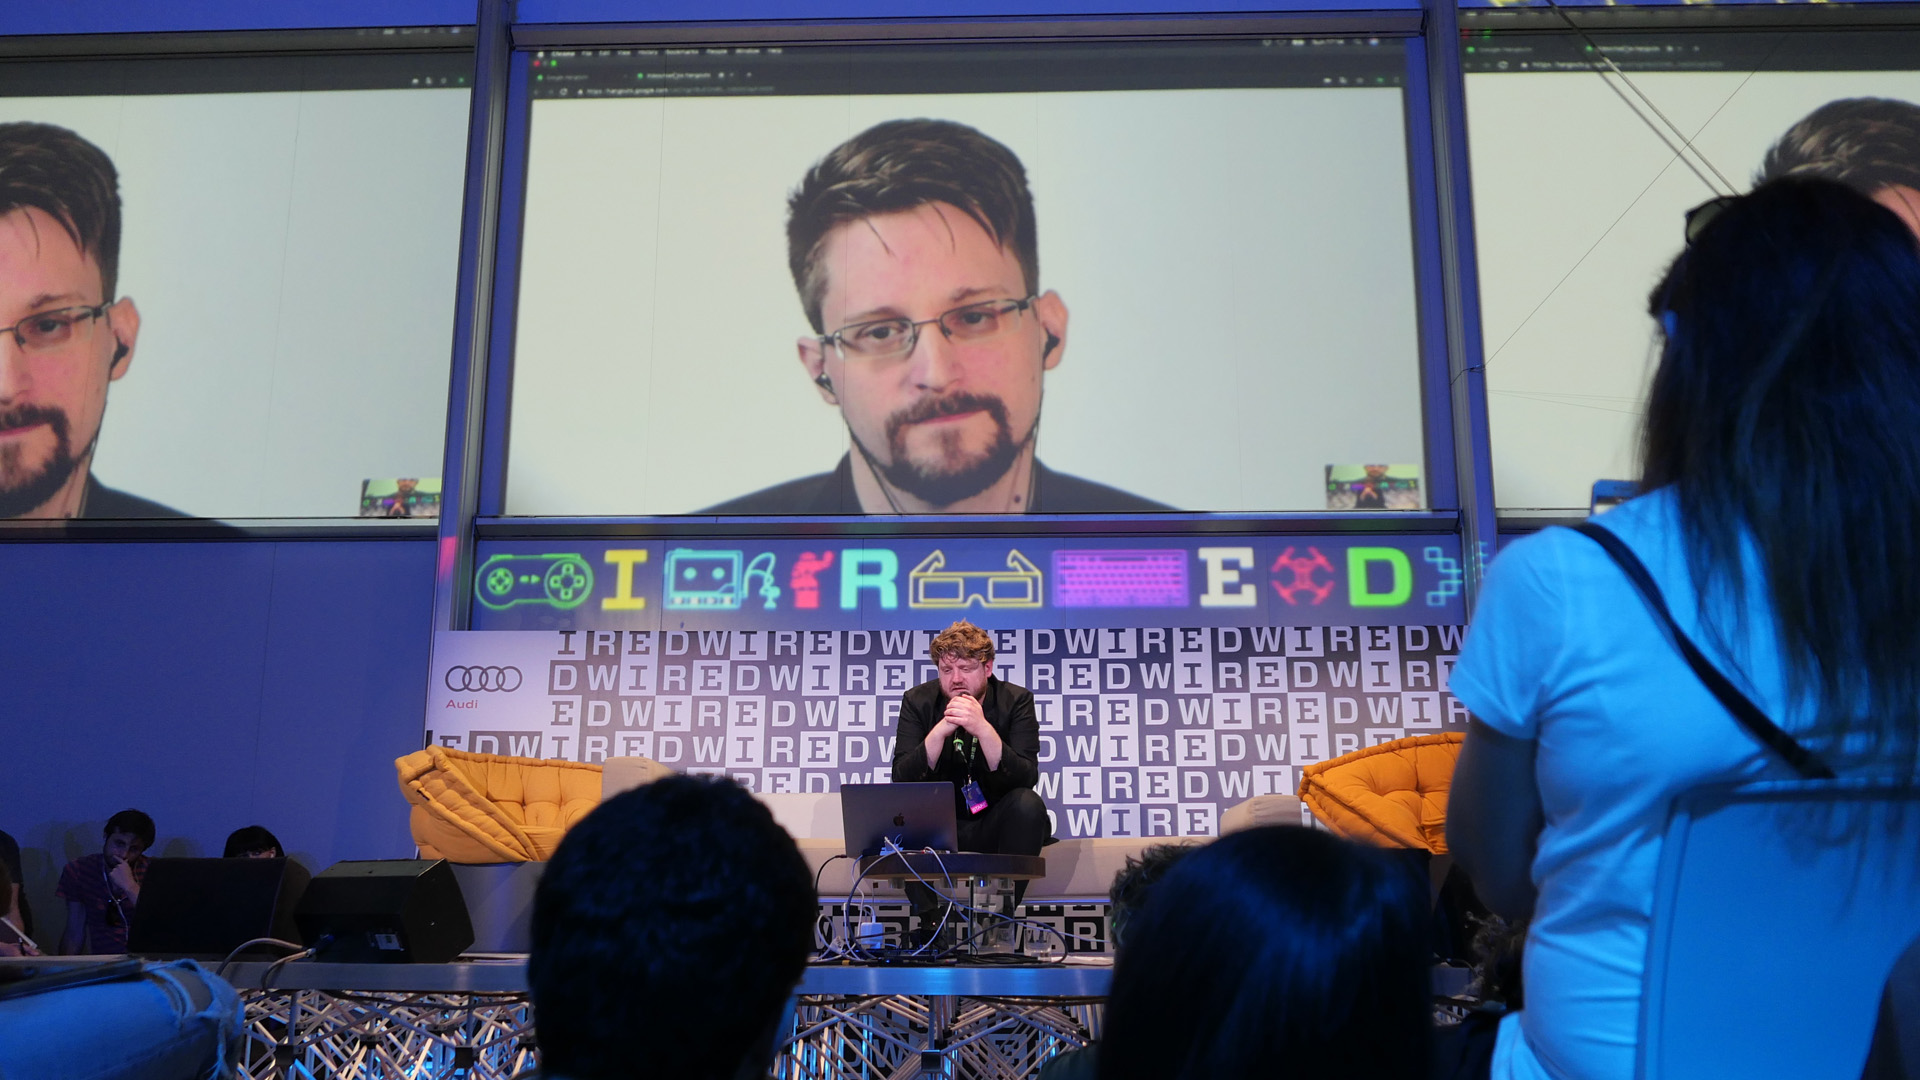 Computer security consultant Edward Snowden speaks in connection from Russia during the Wired Next Fest 2019 at the Giardini Indro Montanelli on May 26, 2019 in Milan, Italy. (Credit: Rosdiana Ciaravolo/Getty Images)